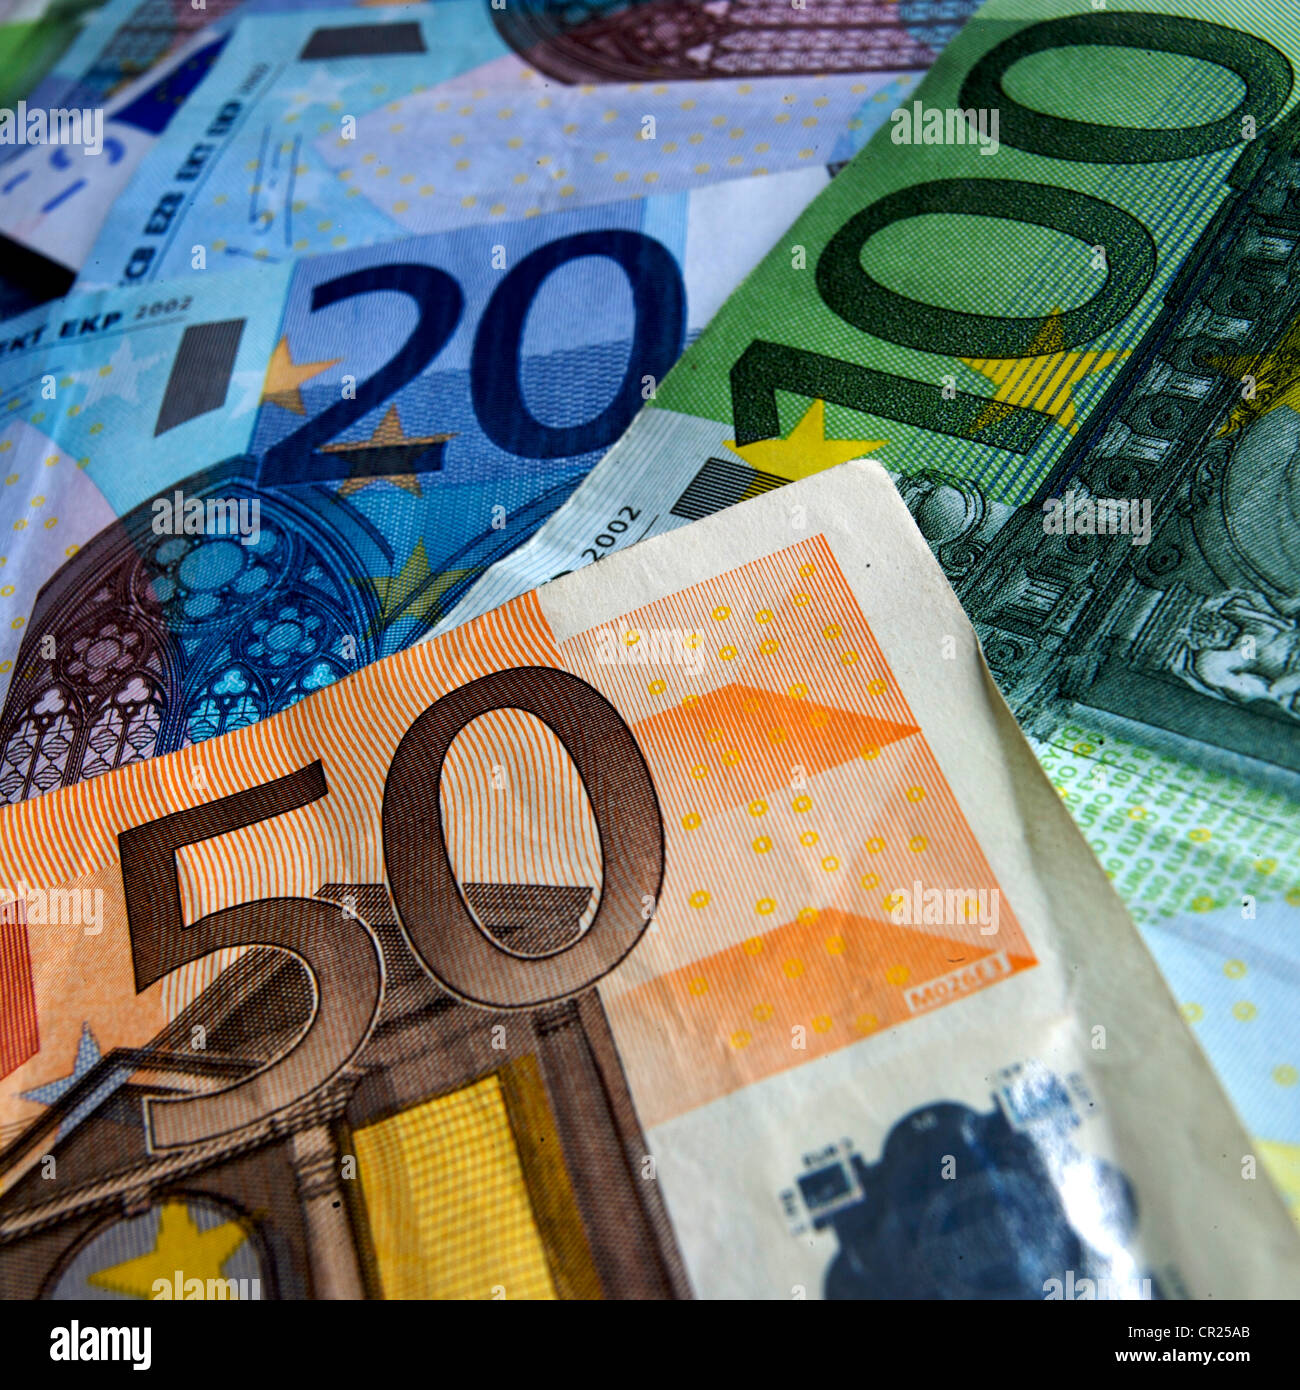 Euros - close up of a pile of different denomination Euro notes - Stock Image